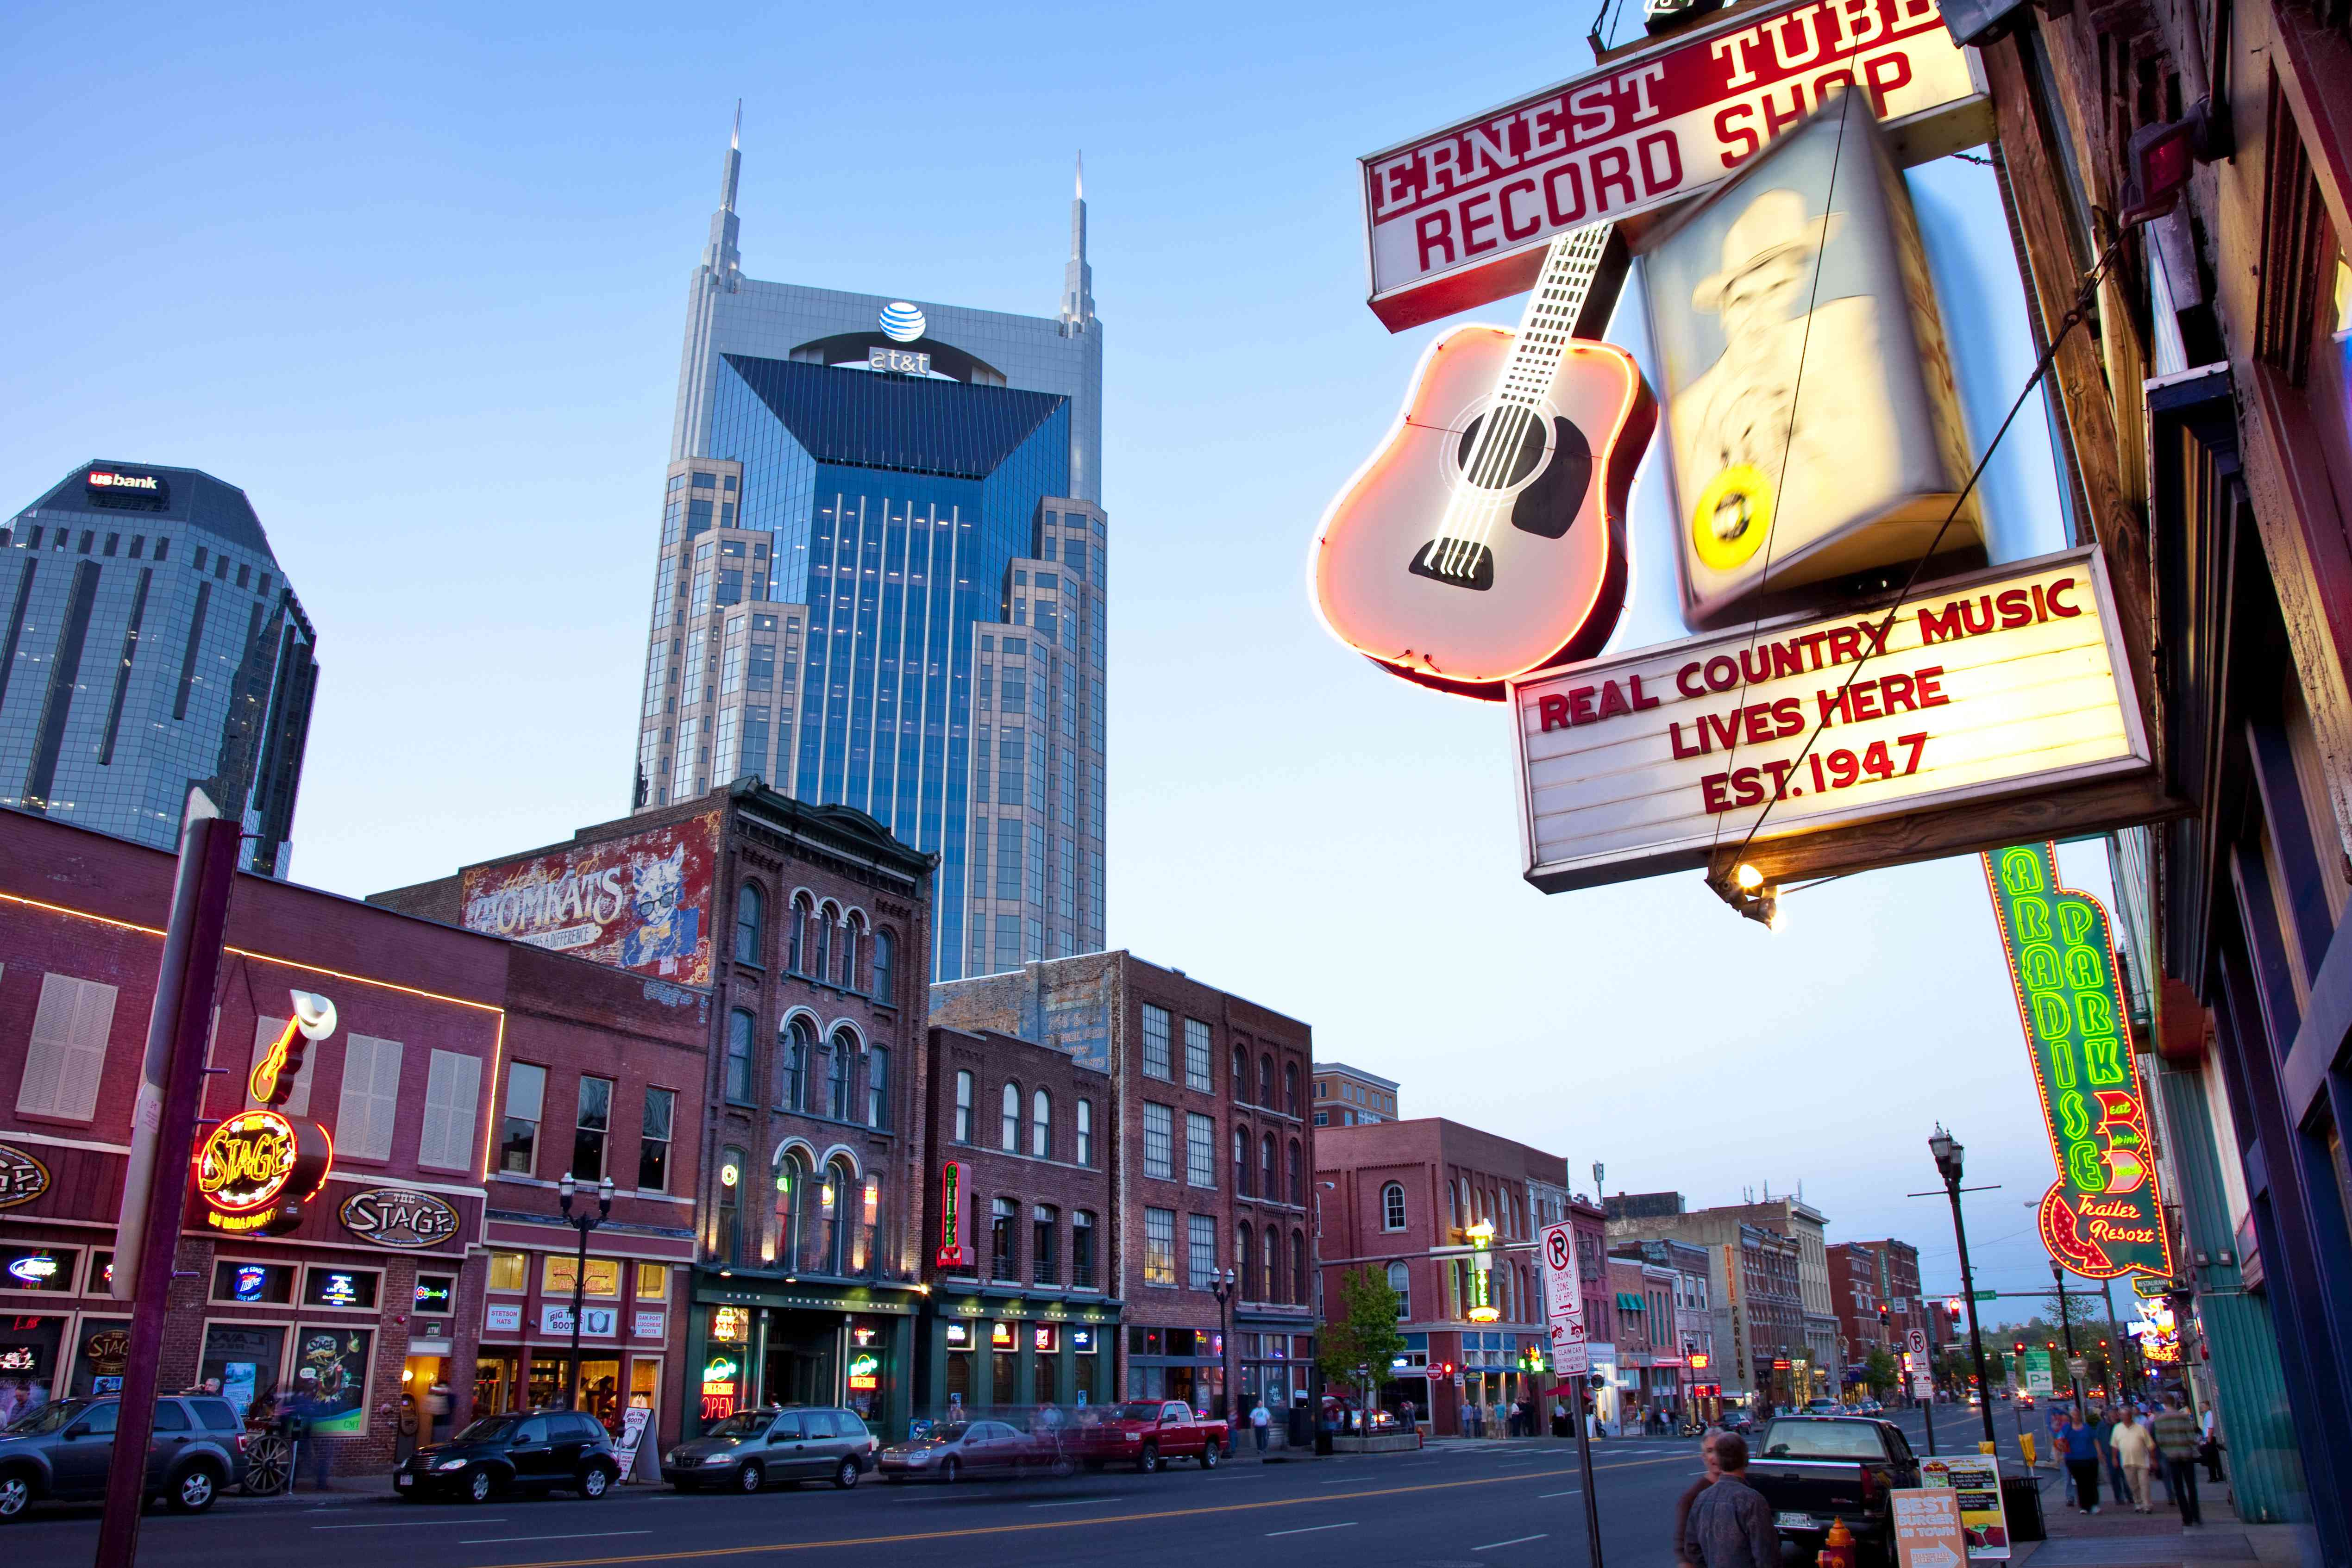 ATandT building towers over historic buildings of lower Broadway, Nashville, Tennessee, USA